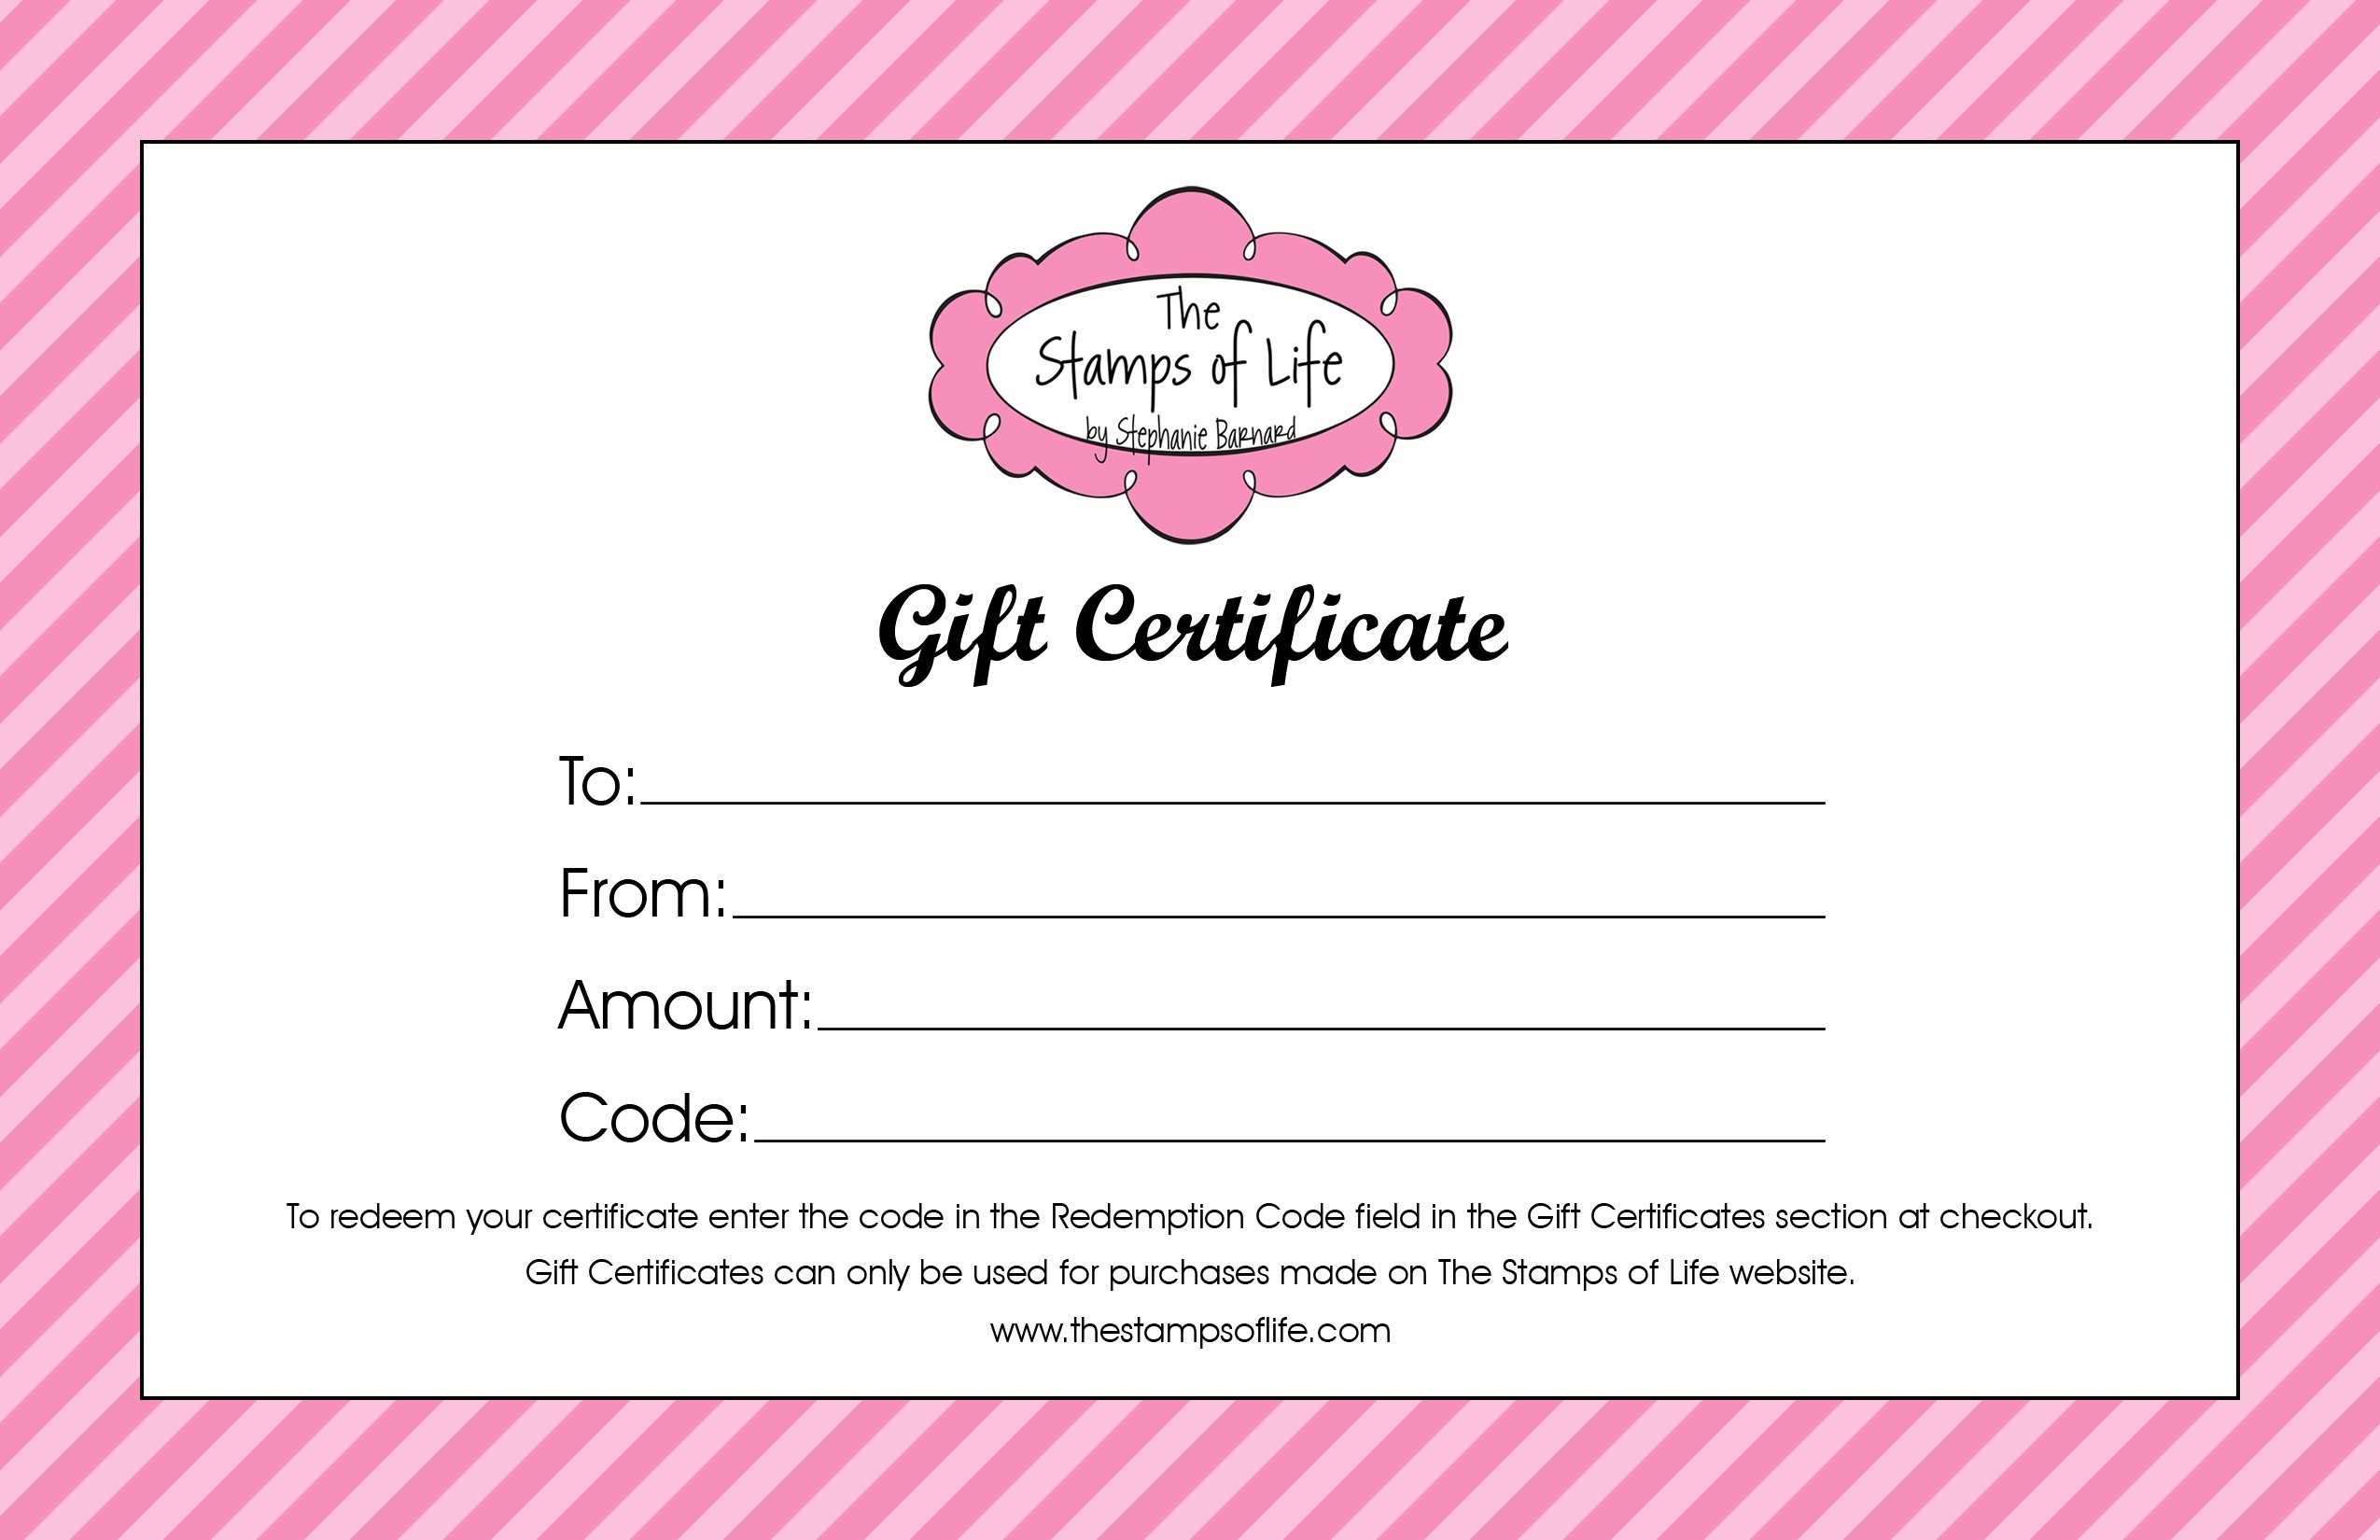 Generic Gift Certificate Template Free Fresh 21 Free Free Gift Certificate Templates Word Excel formats